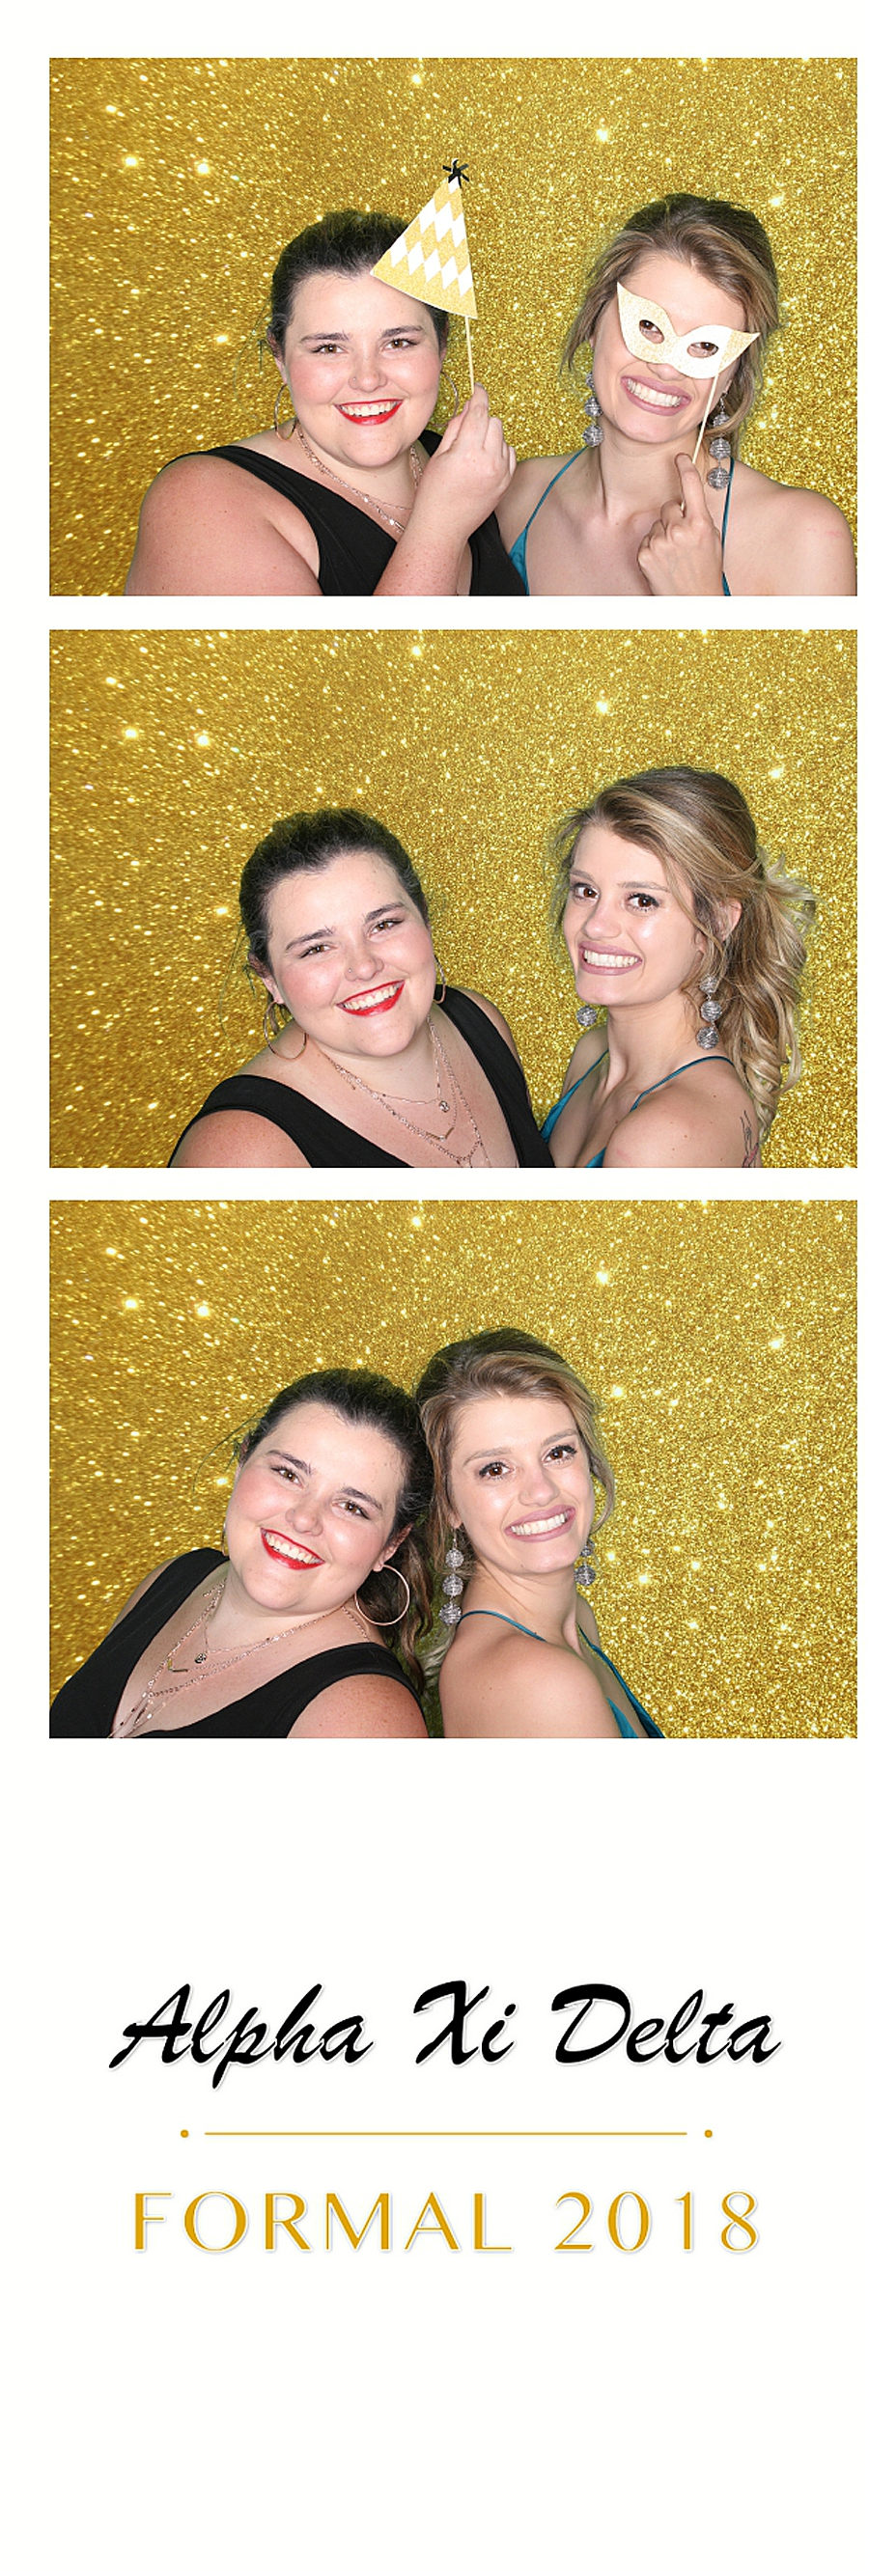 Knoxville Photo Booth_1579.jpg